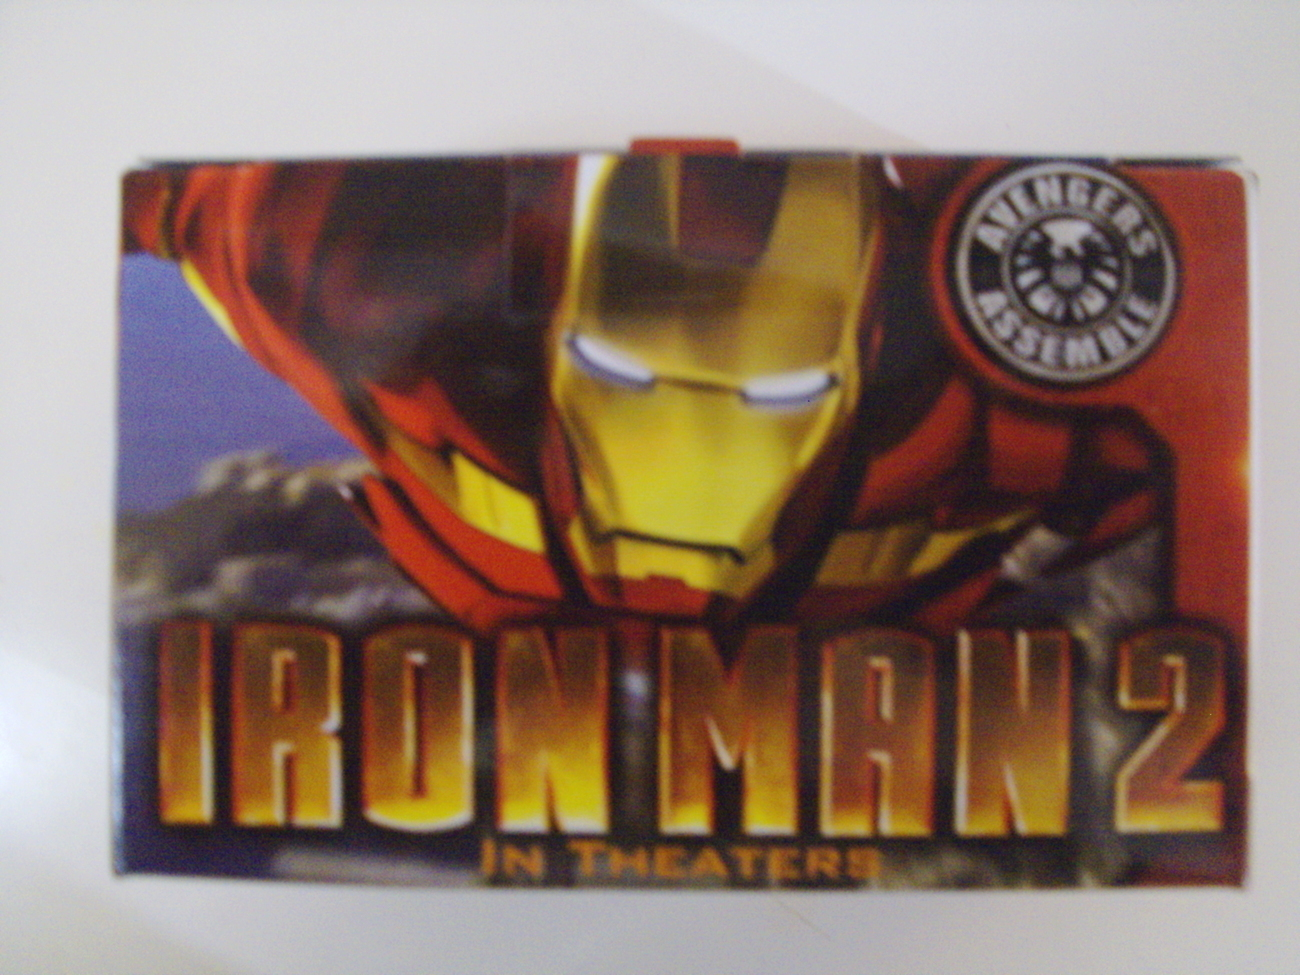 Marvel Iron Man 2 Construct N' Play action figure Burger King 2010 - New